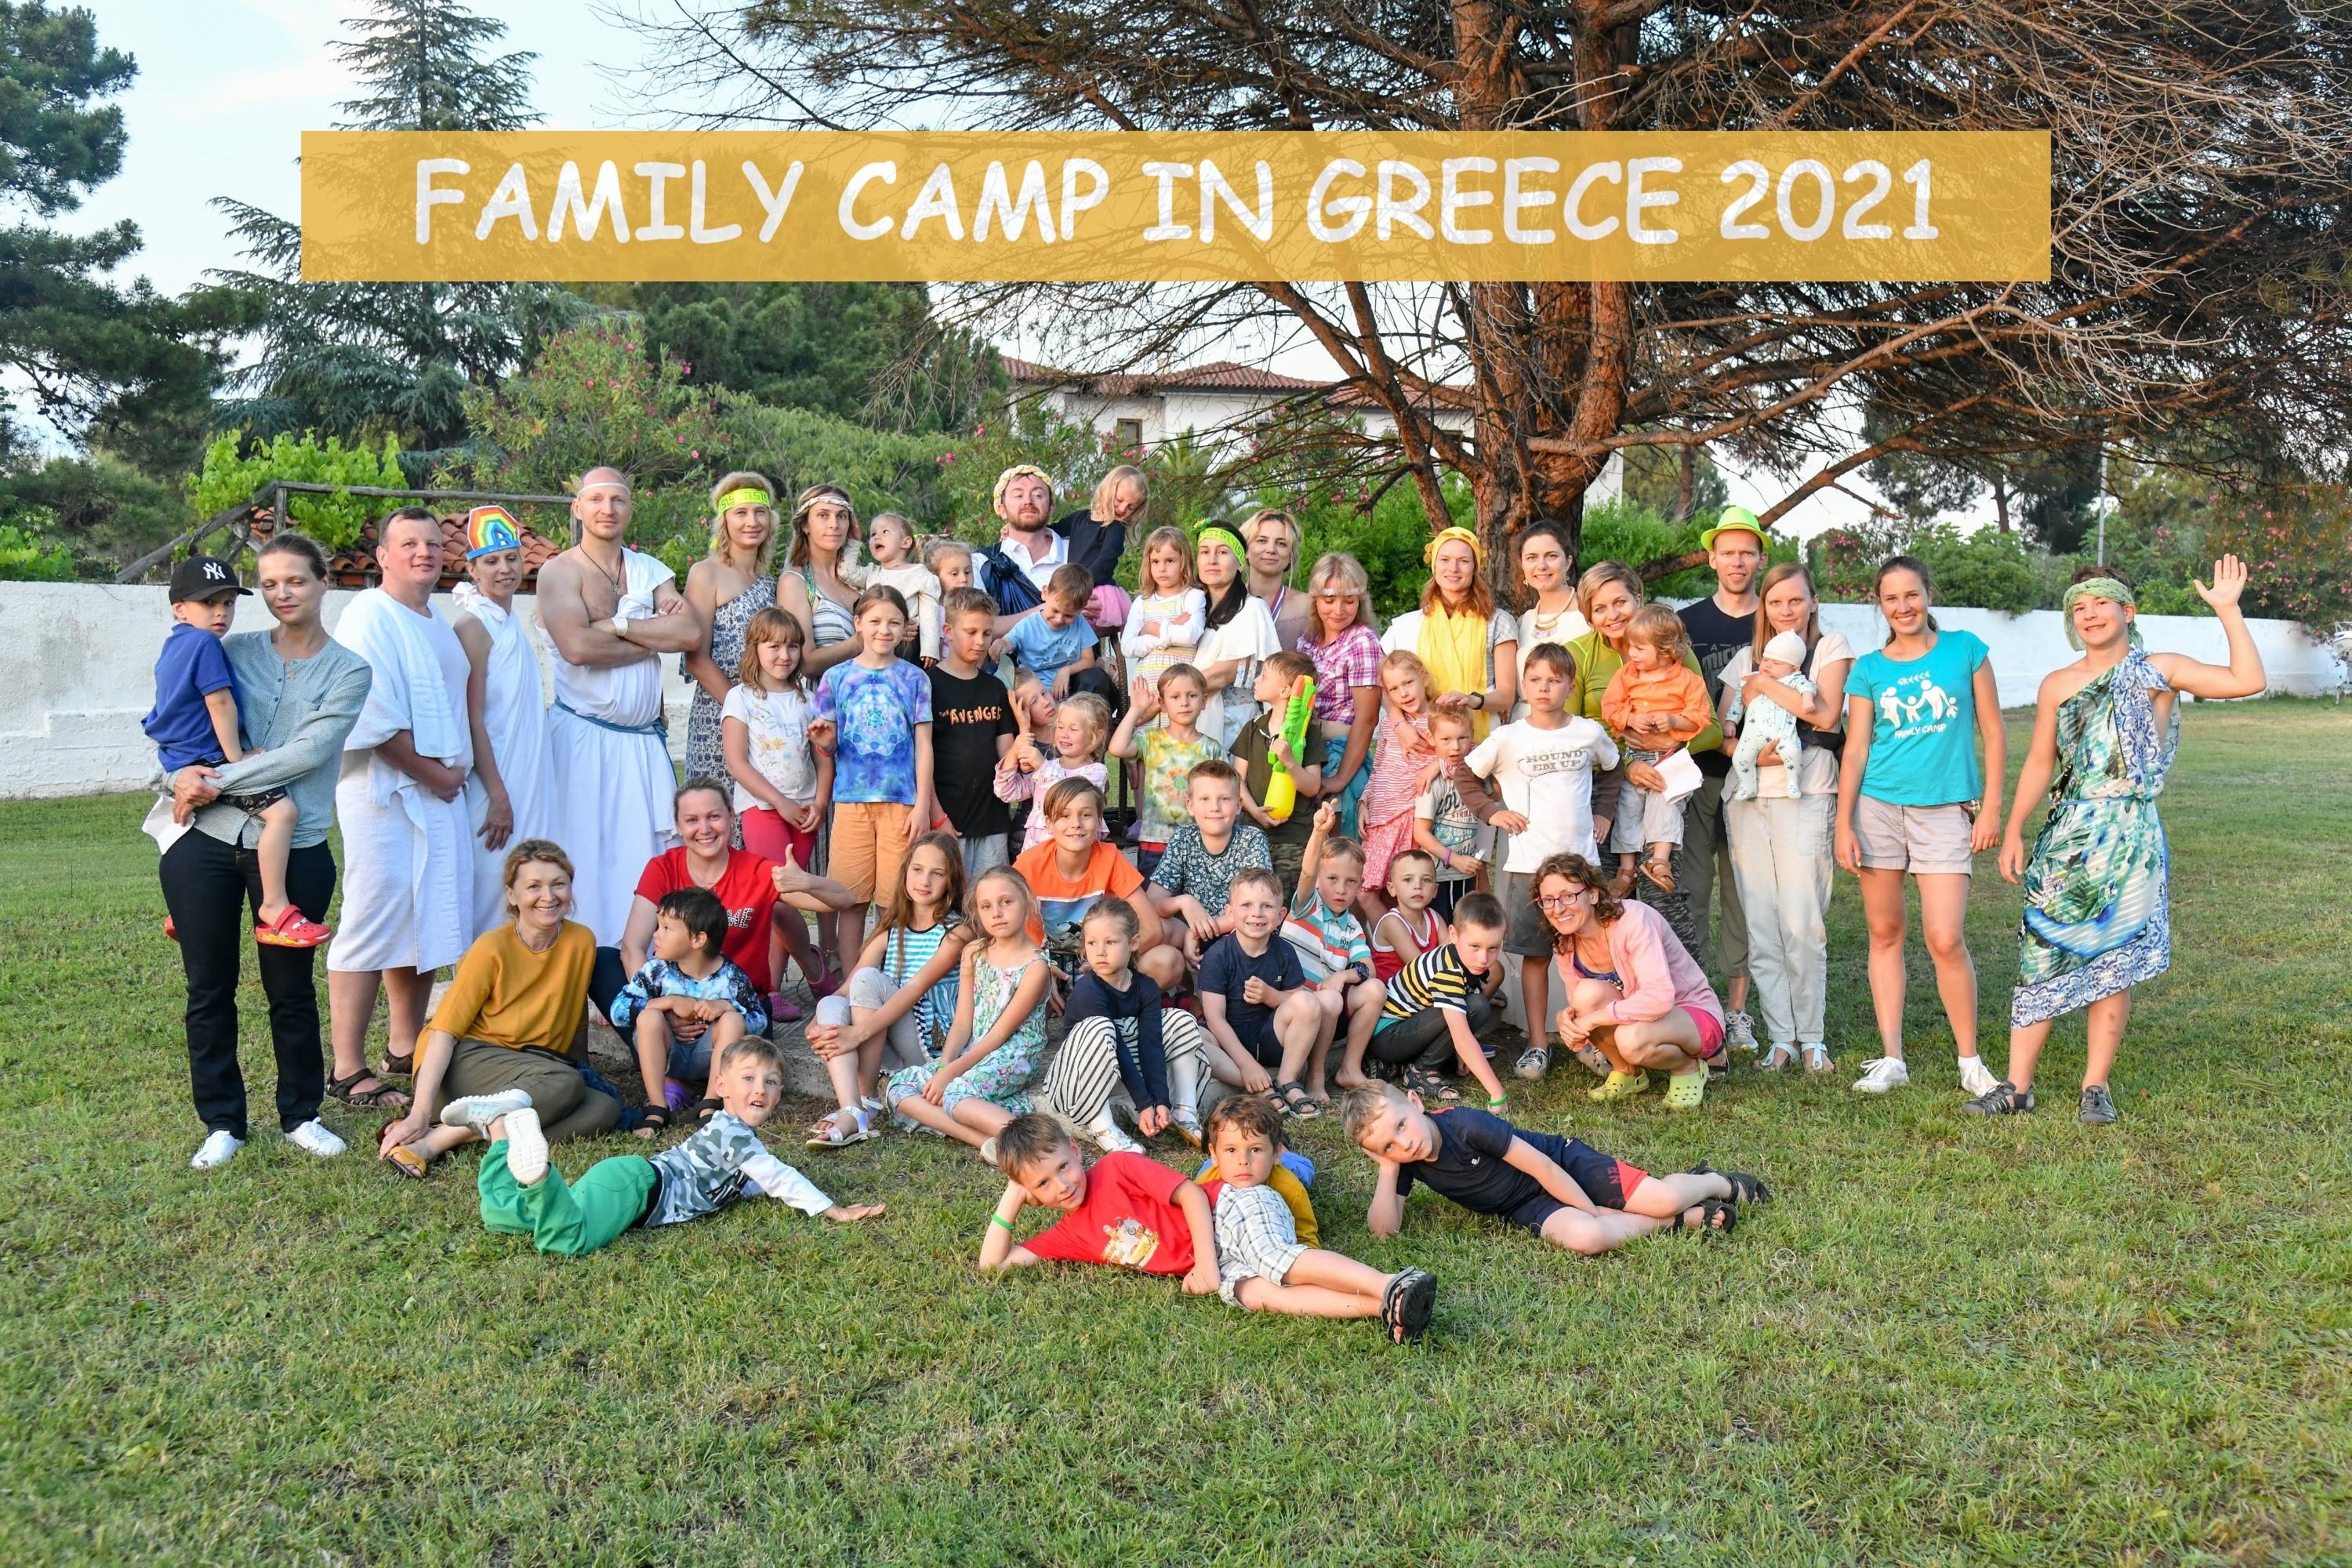 Family camp in greece2021